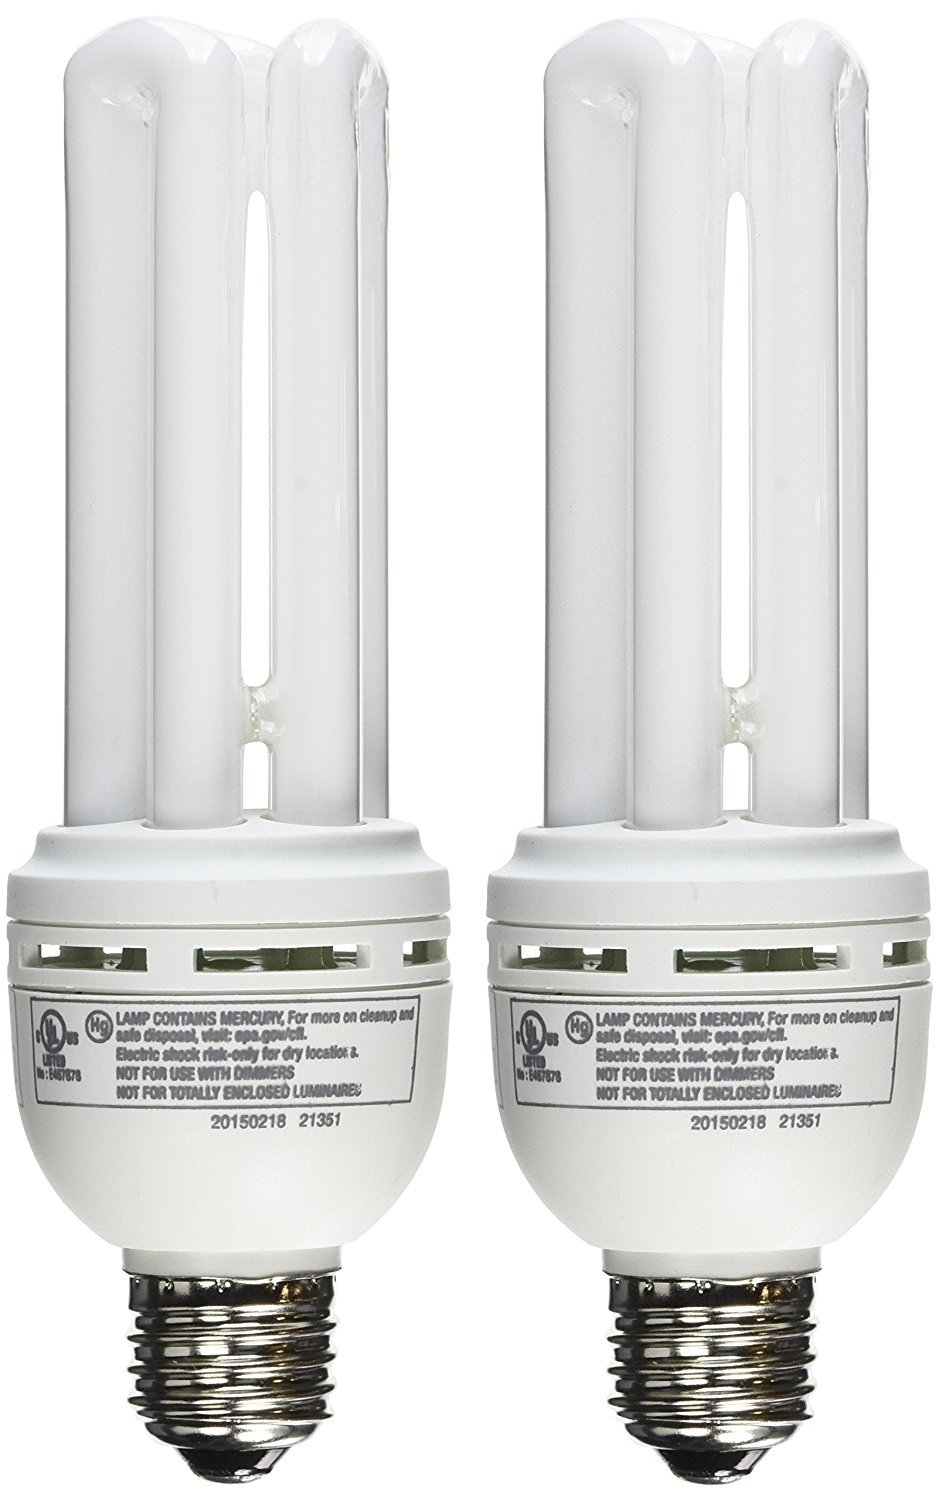 (2 Pack) Zoo Med ReptiSun 5.0 Compact Fluorescent Lamps - 26w by Zoo Med